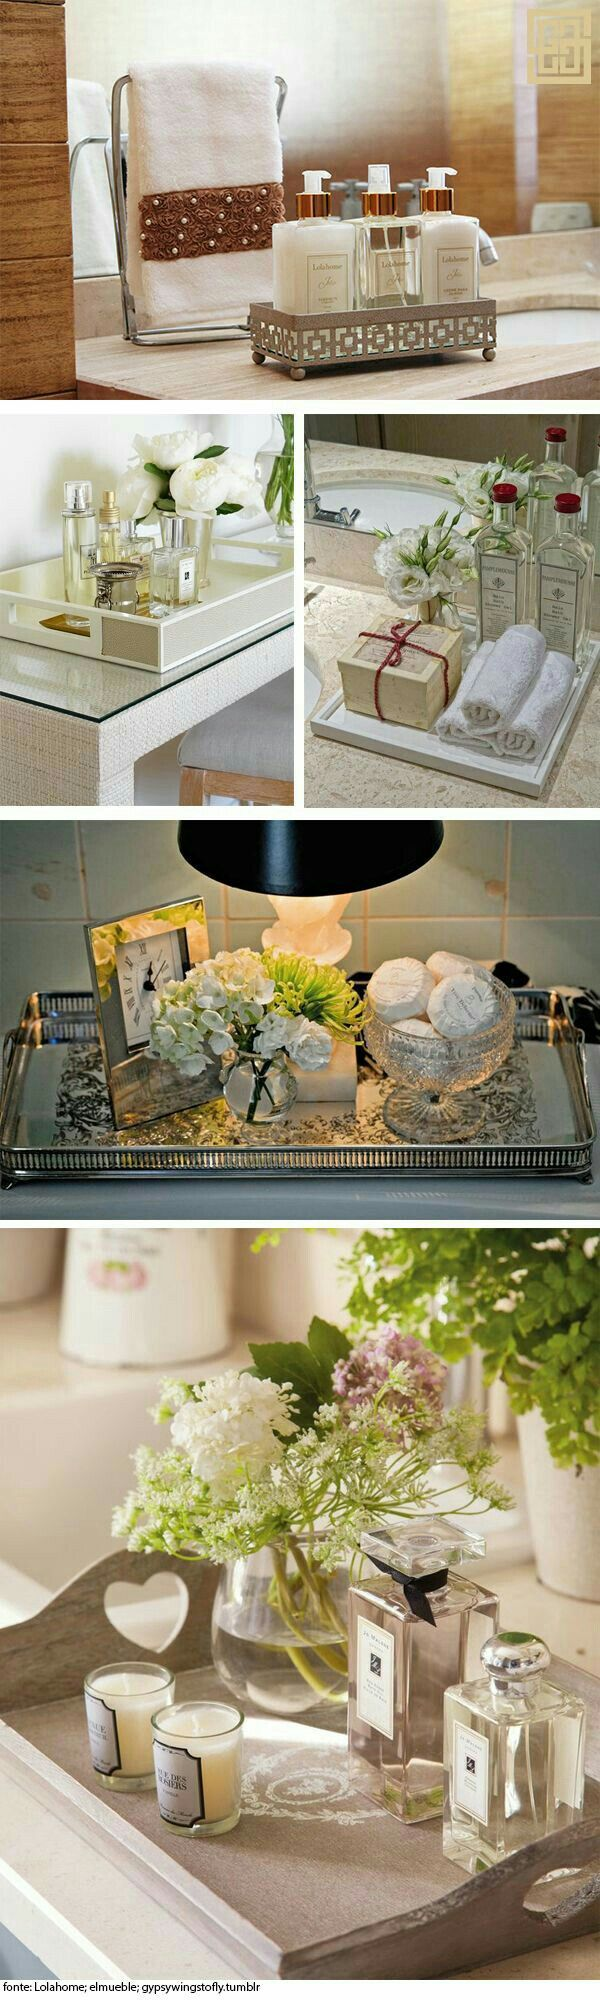 Best 25+ Perfume tray ideas on Pinterest | Vanity tray, Makeup ...